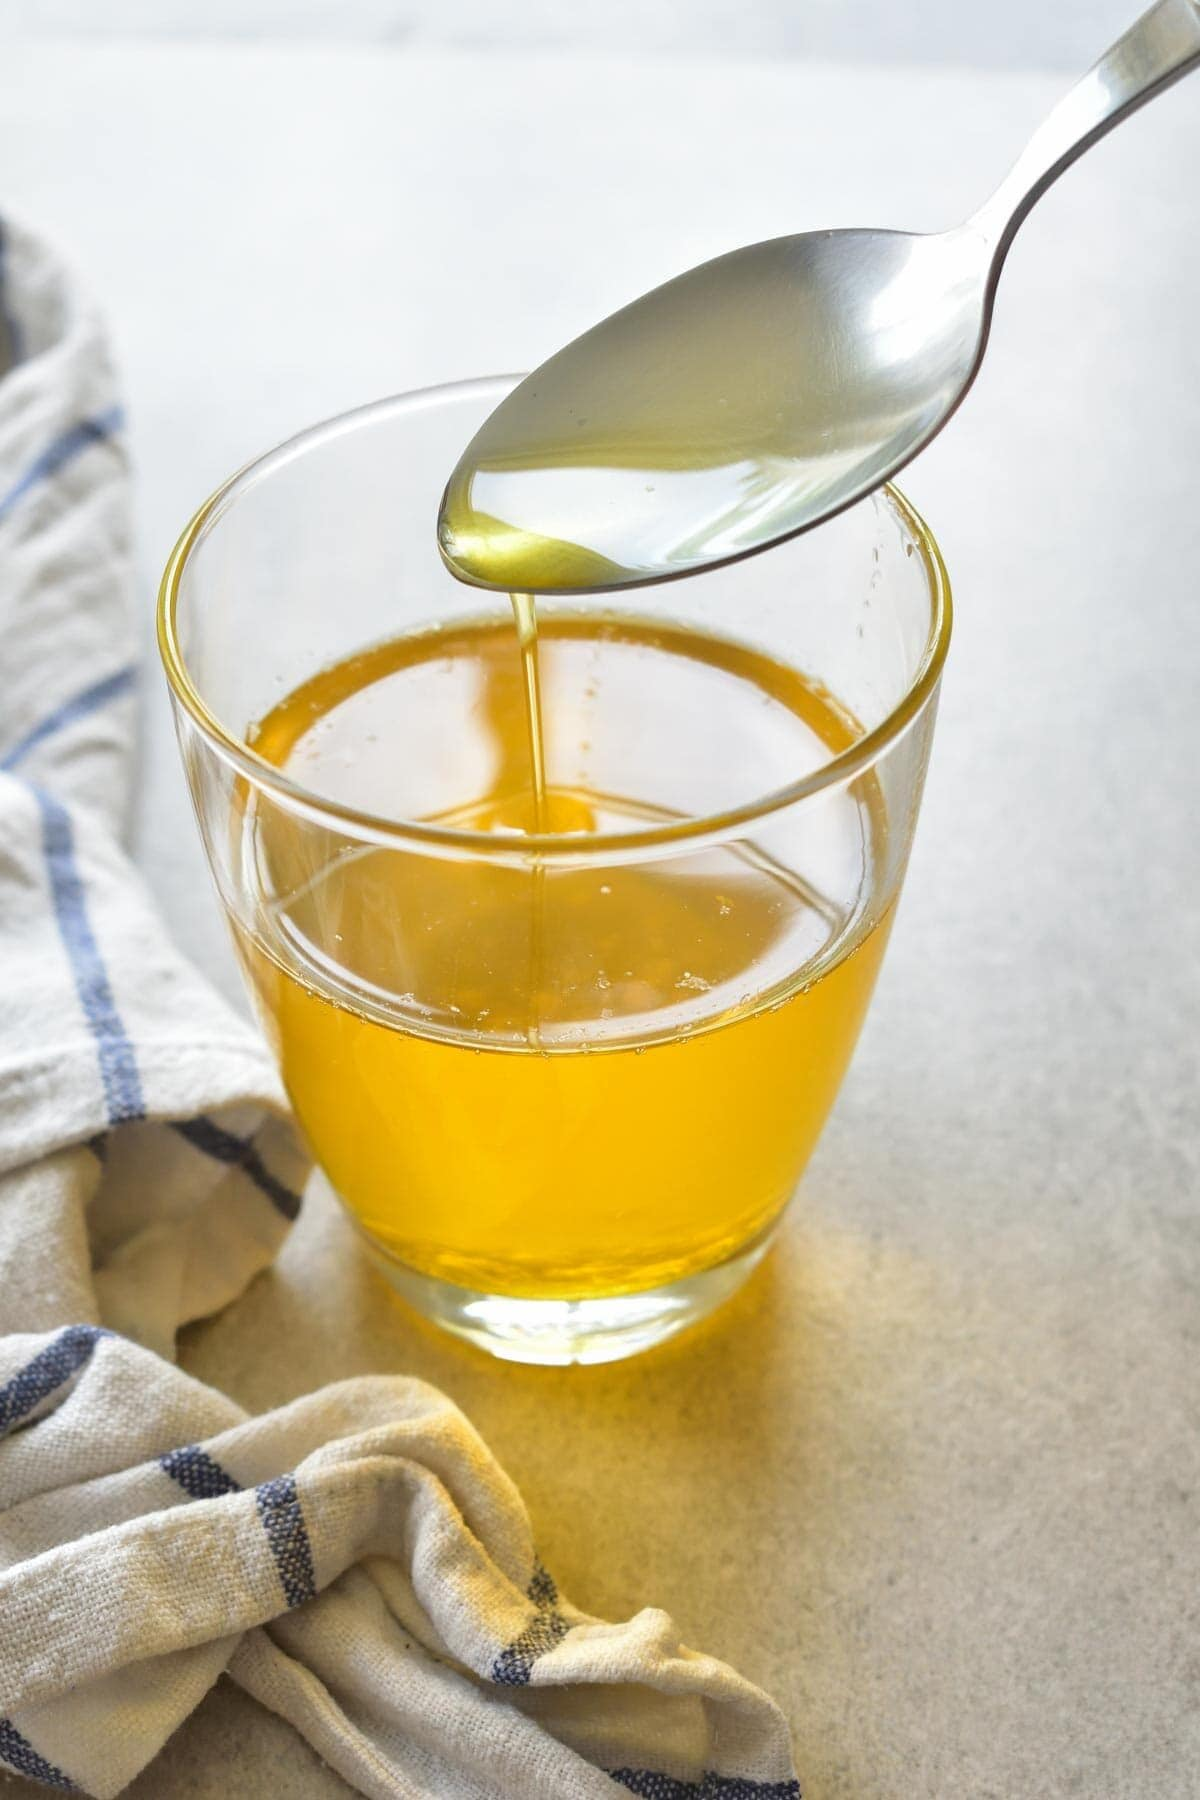 Clarified butter is being spooned into a glass.